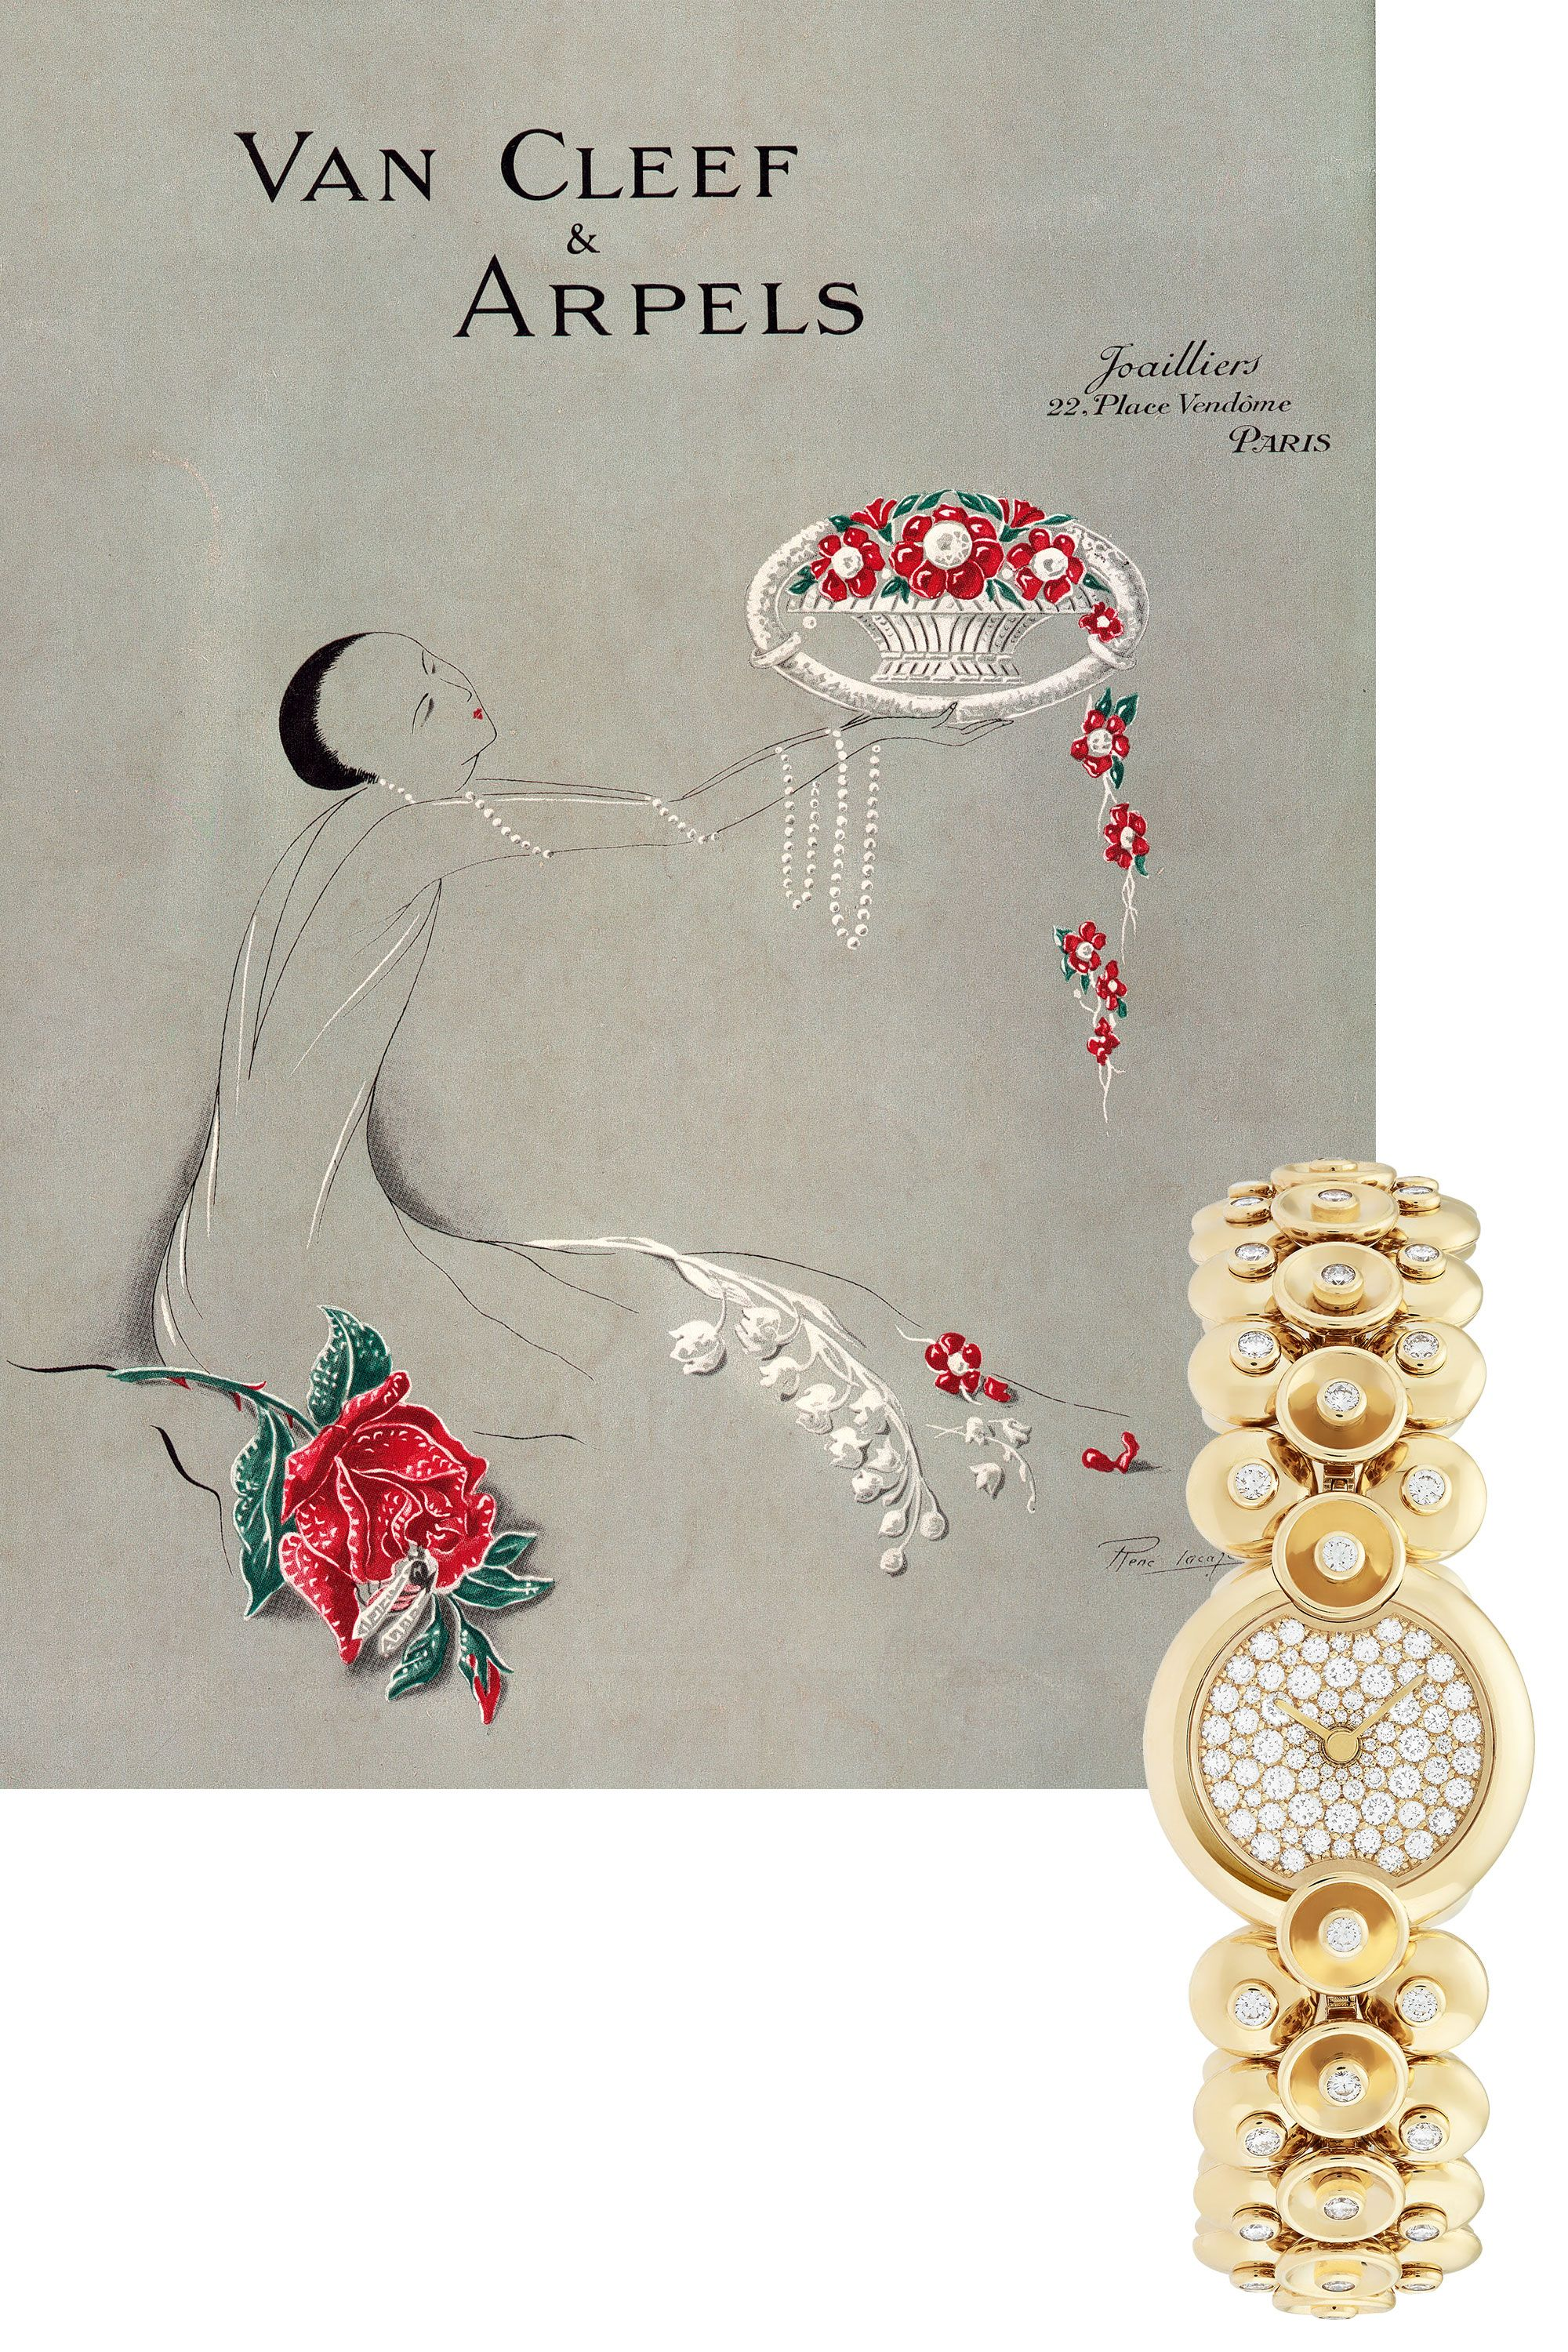 """<p>Art Deco elegance was in full force in this Van Cleef & Arpelsad foritsboutiqueat Paris's Place Vendôme<span class=""""redactor-invisible-space"""" data-verified=""""redactor"""" data-redactor-tag=""""span"""" data-redactor-class=""""redactor-invisible-space"""">. T</span>he same level of glam is still apparenttoday, with a yellow gold and diamond watch based on a """"paillette"""" motif created in the 1930s.</p><p><em data-redactor-tag=""""em"""" data-verified=""""redactor"""">Bouton d'or, $64,500;</em><a href=""""http://www.vancleefarpels.com/us/en.html"""" target=""""_blank"""" data-tracking-id=""""recirc-text-link""""><em data-redactor-tag=""""em"""" data-verified=""""redactor"""">vancleefarpels.com</em></a></p>"""